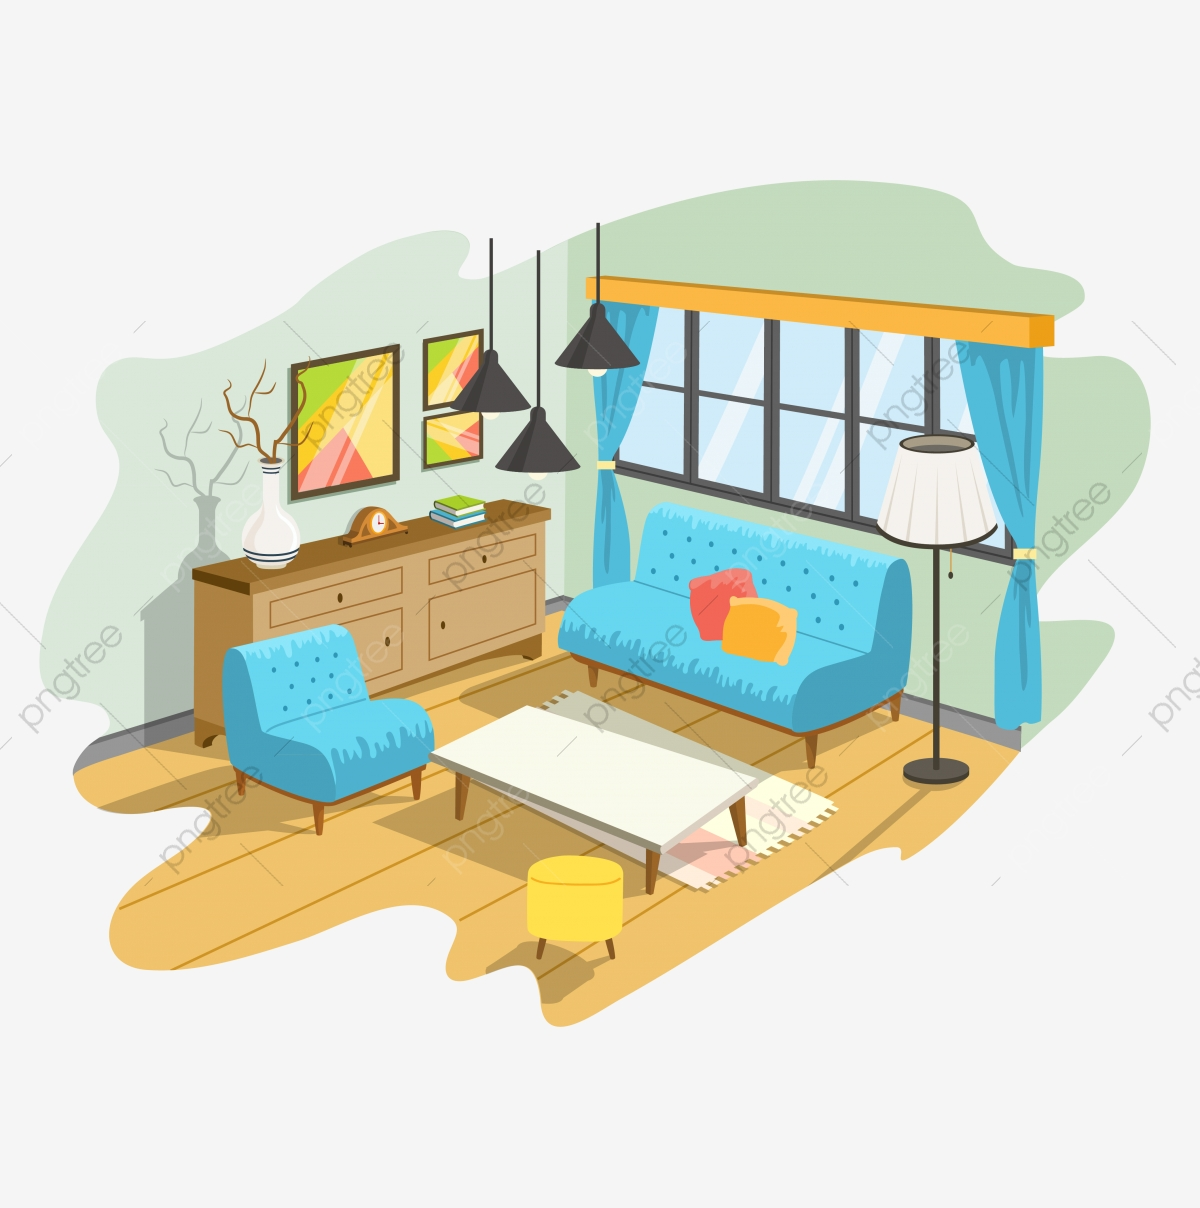 Cozy Living Room Vector Illustration: Illustration Of A Cartoon Interior Cozy Living Room